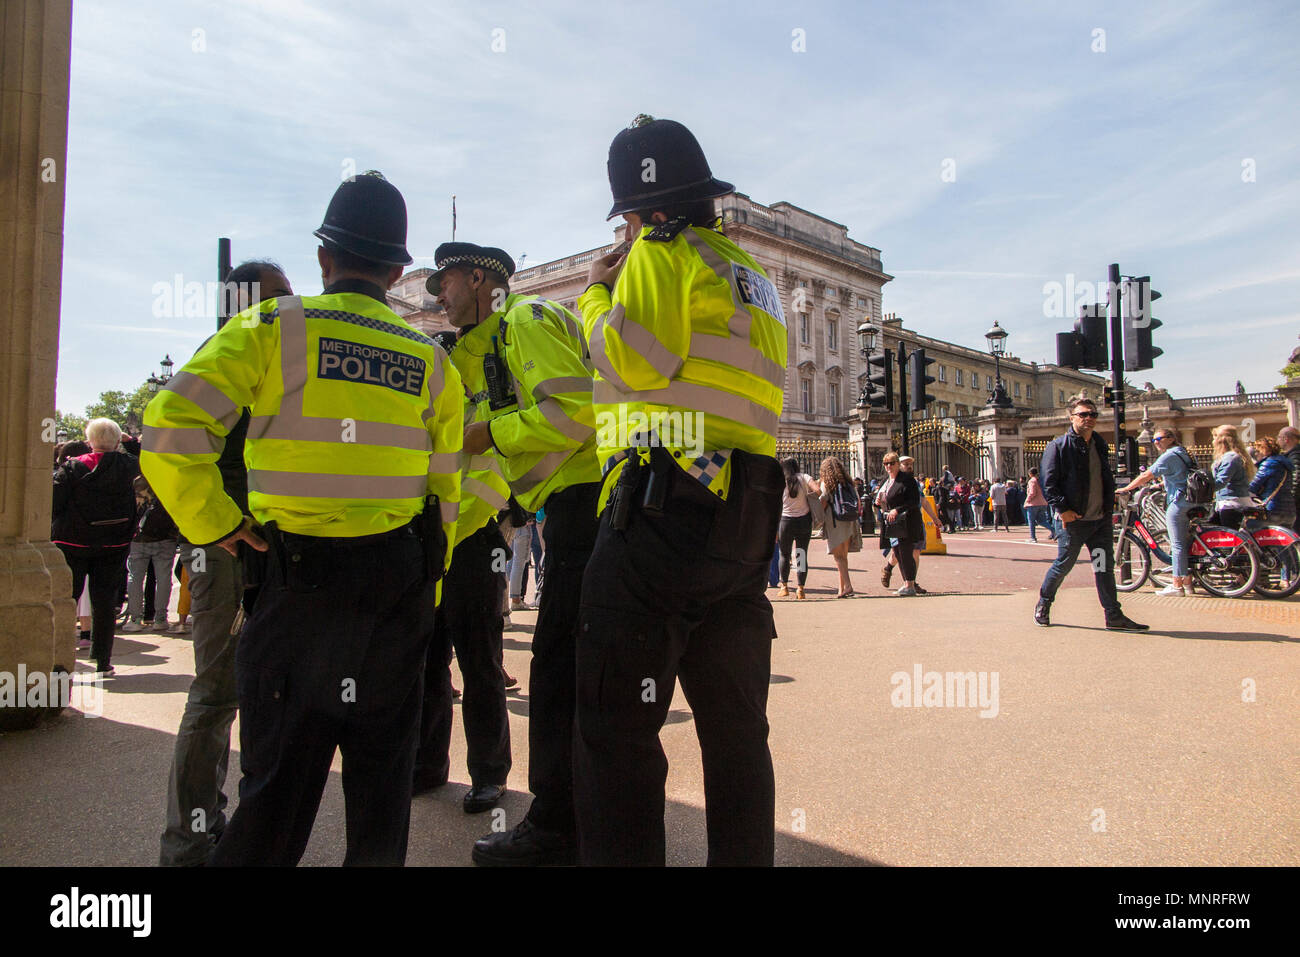 Police arresting a pickpocket at the changing of the guard at Buckingham Palace in London - Stock Image